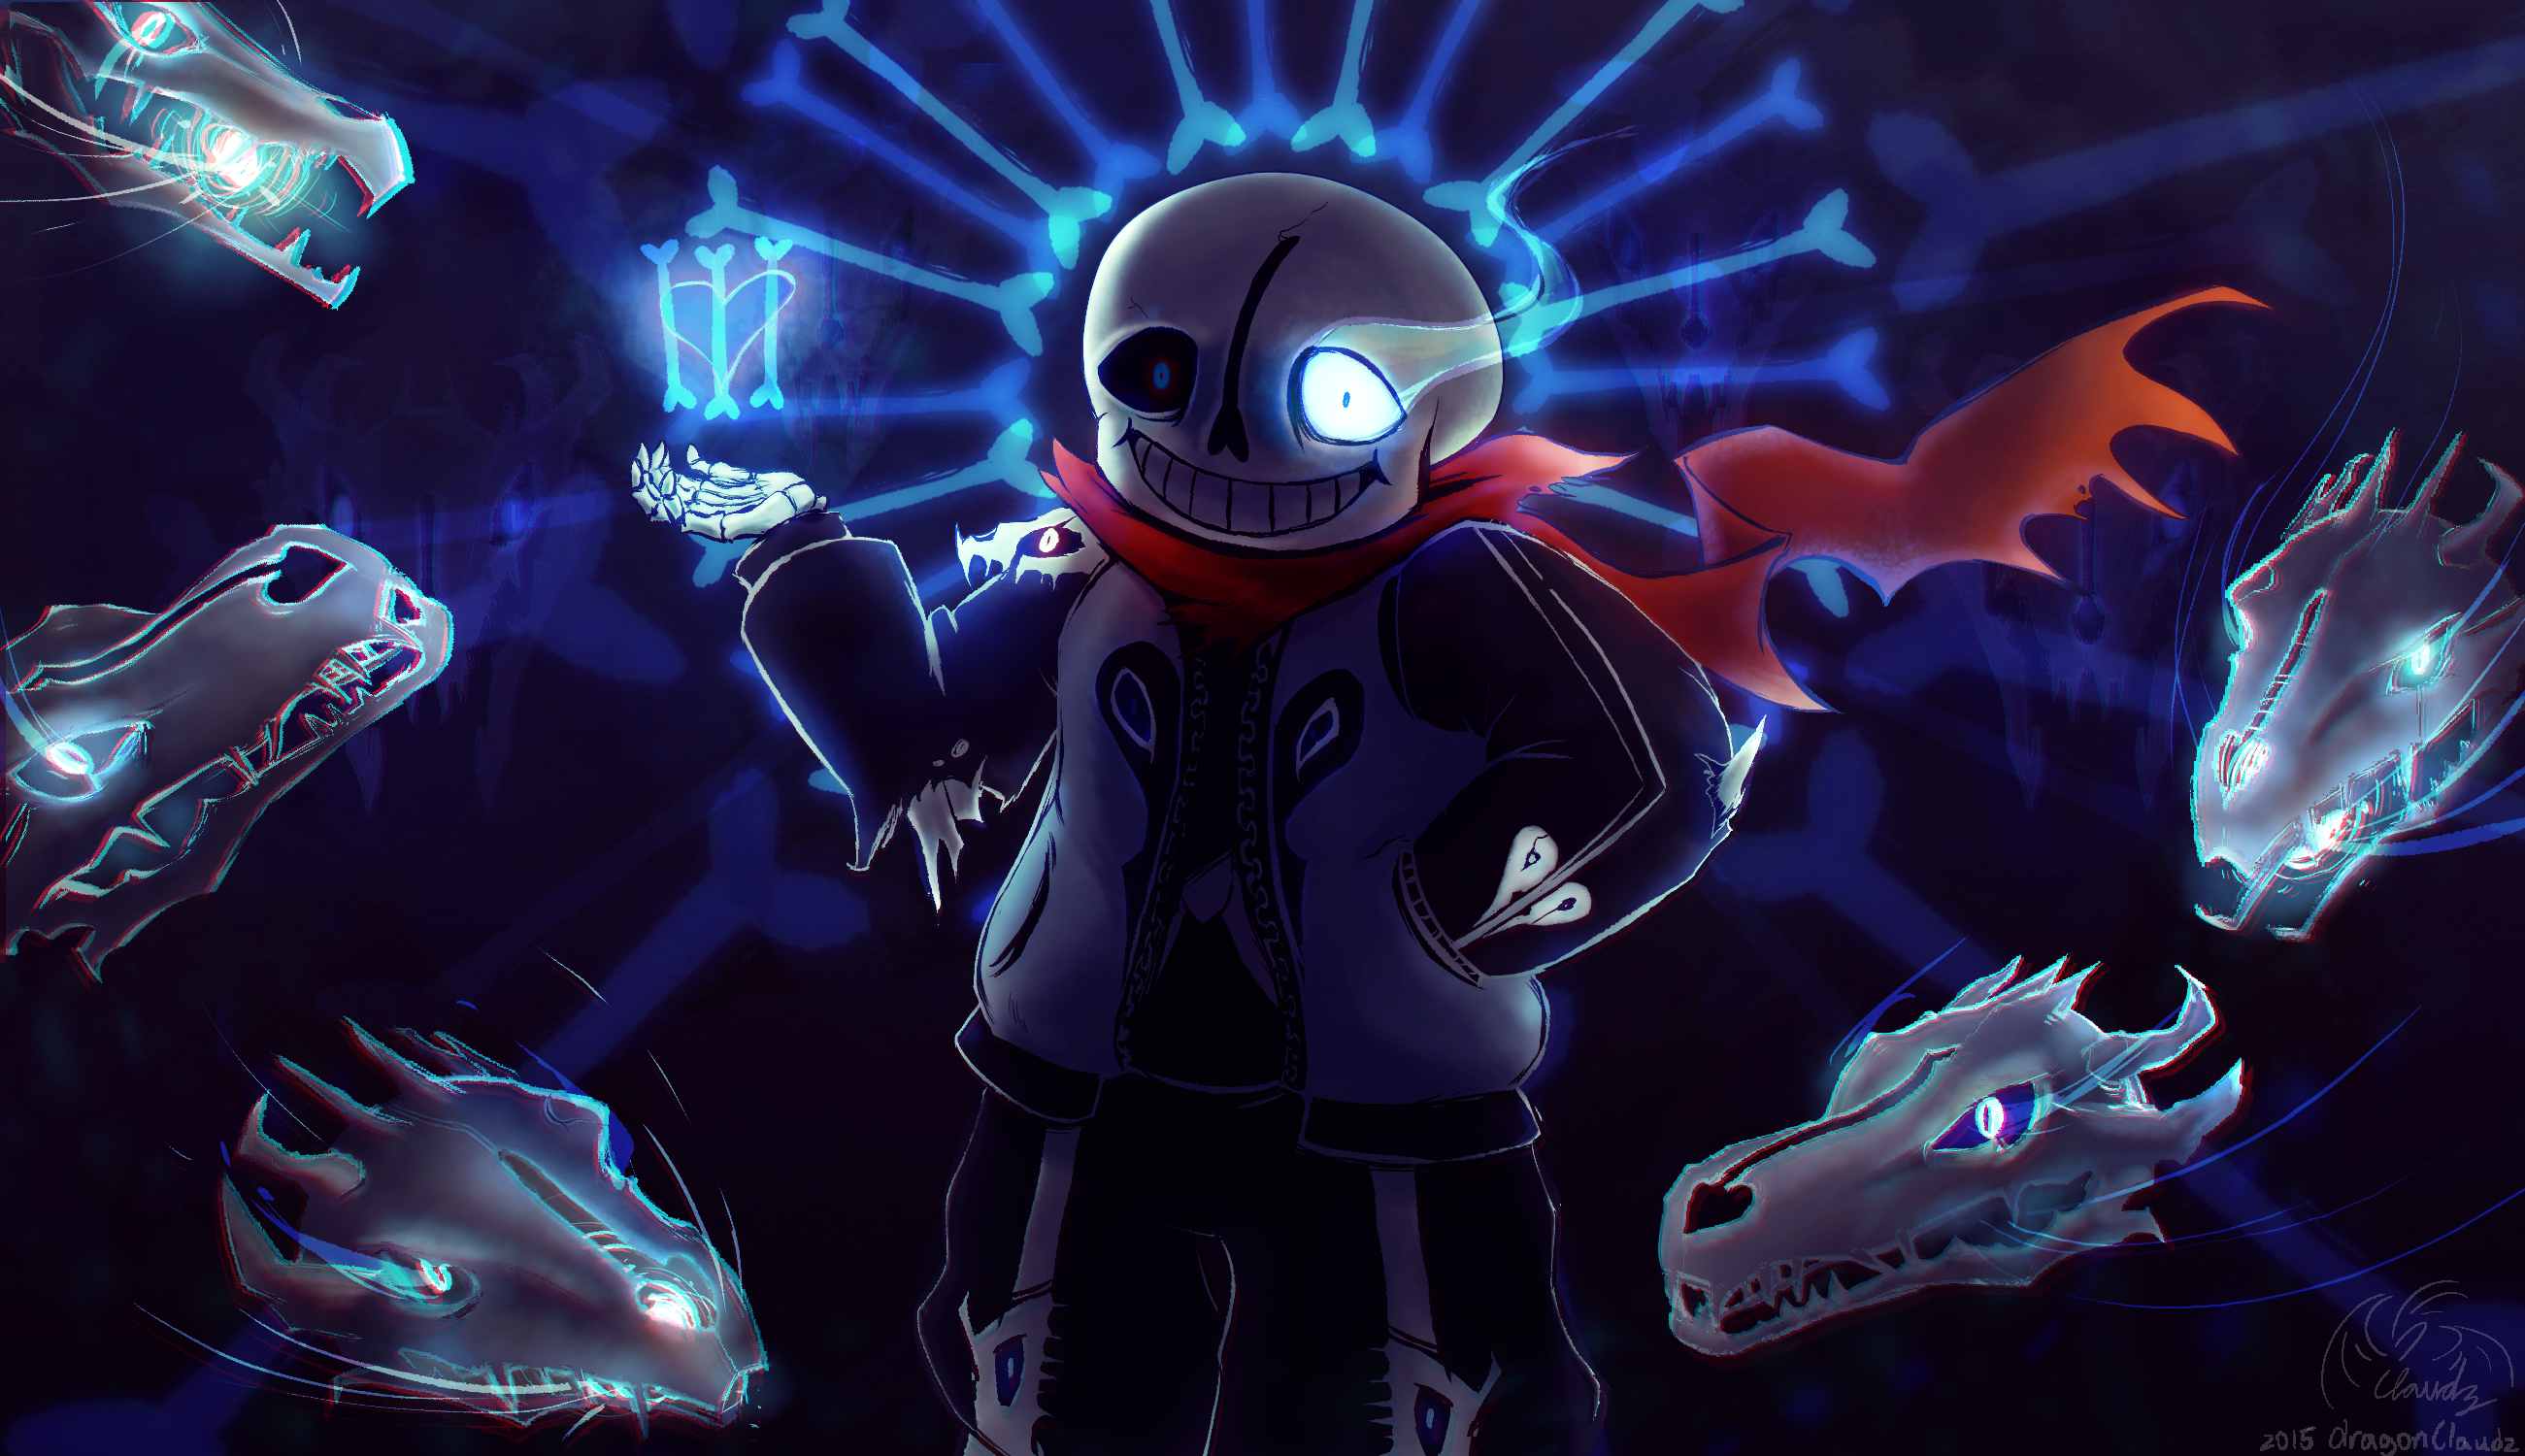 Sans Boss Battle Undertale OST Extended Seamless 2601x1500